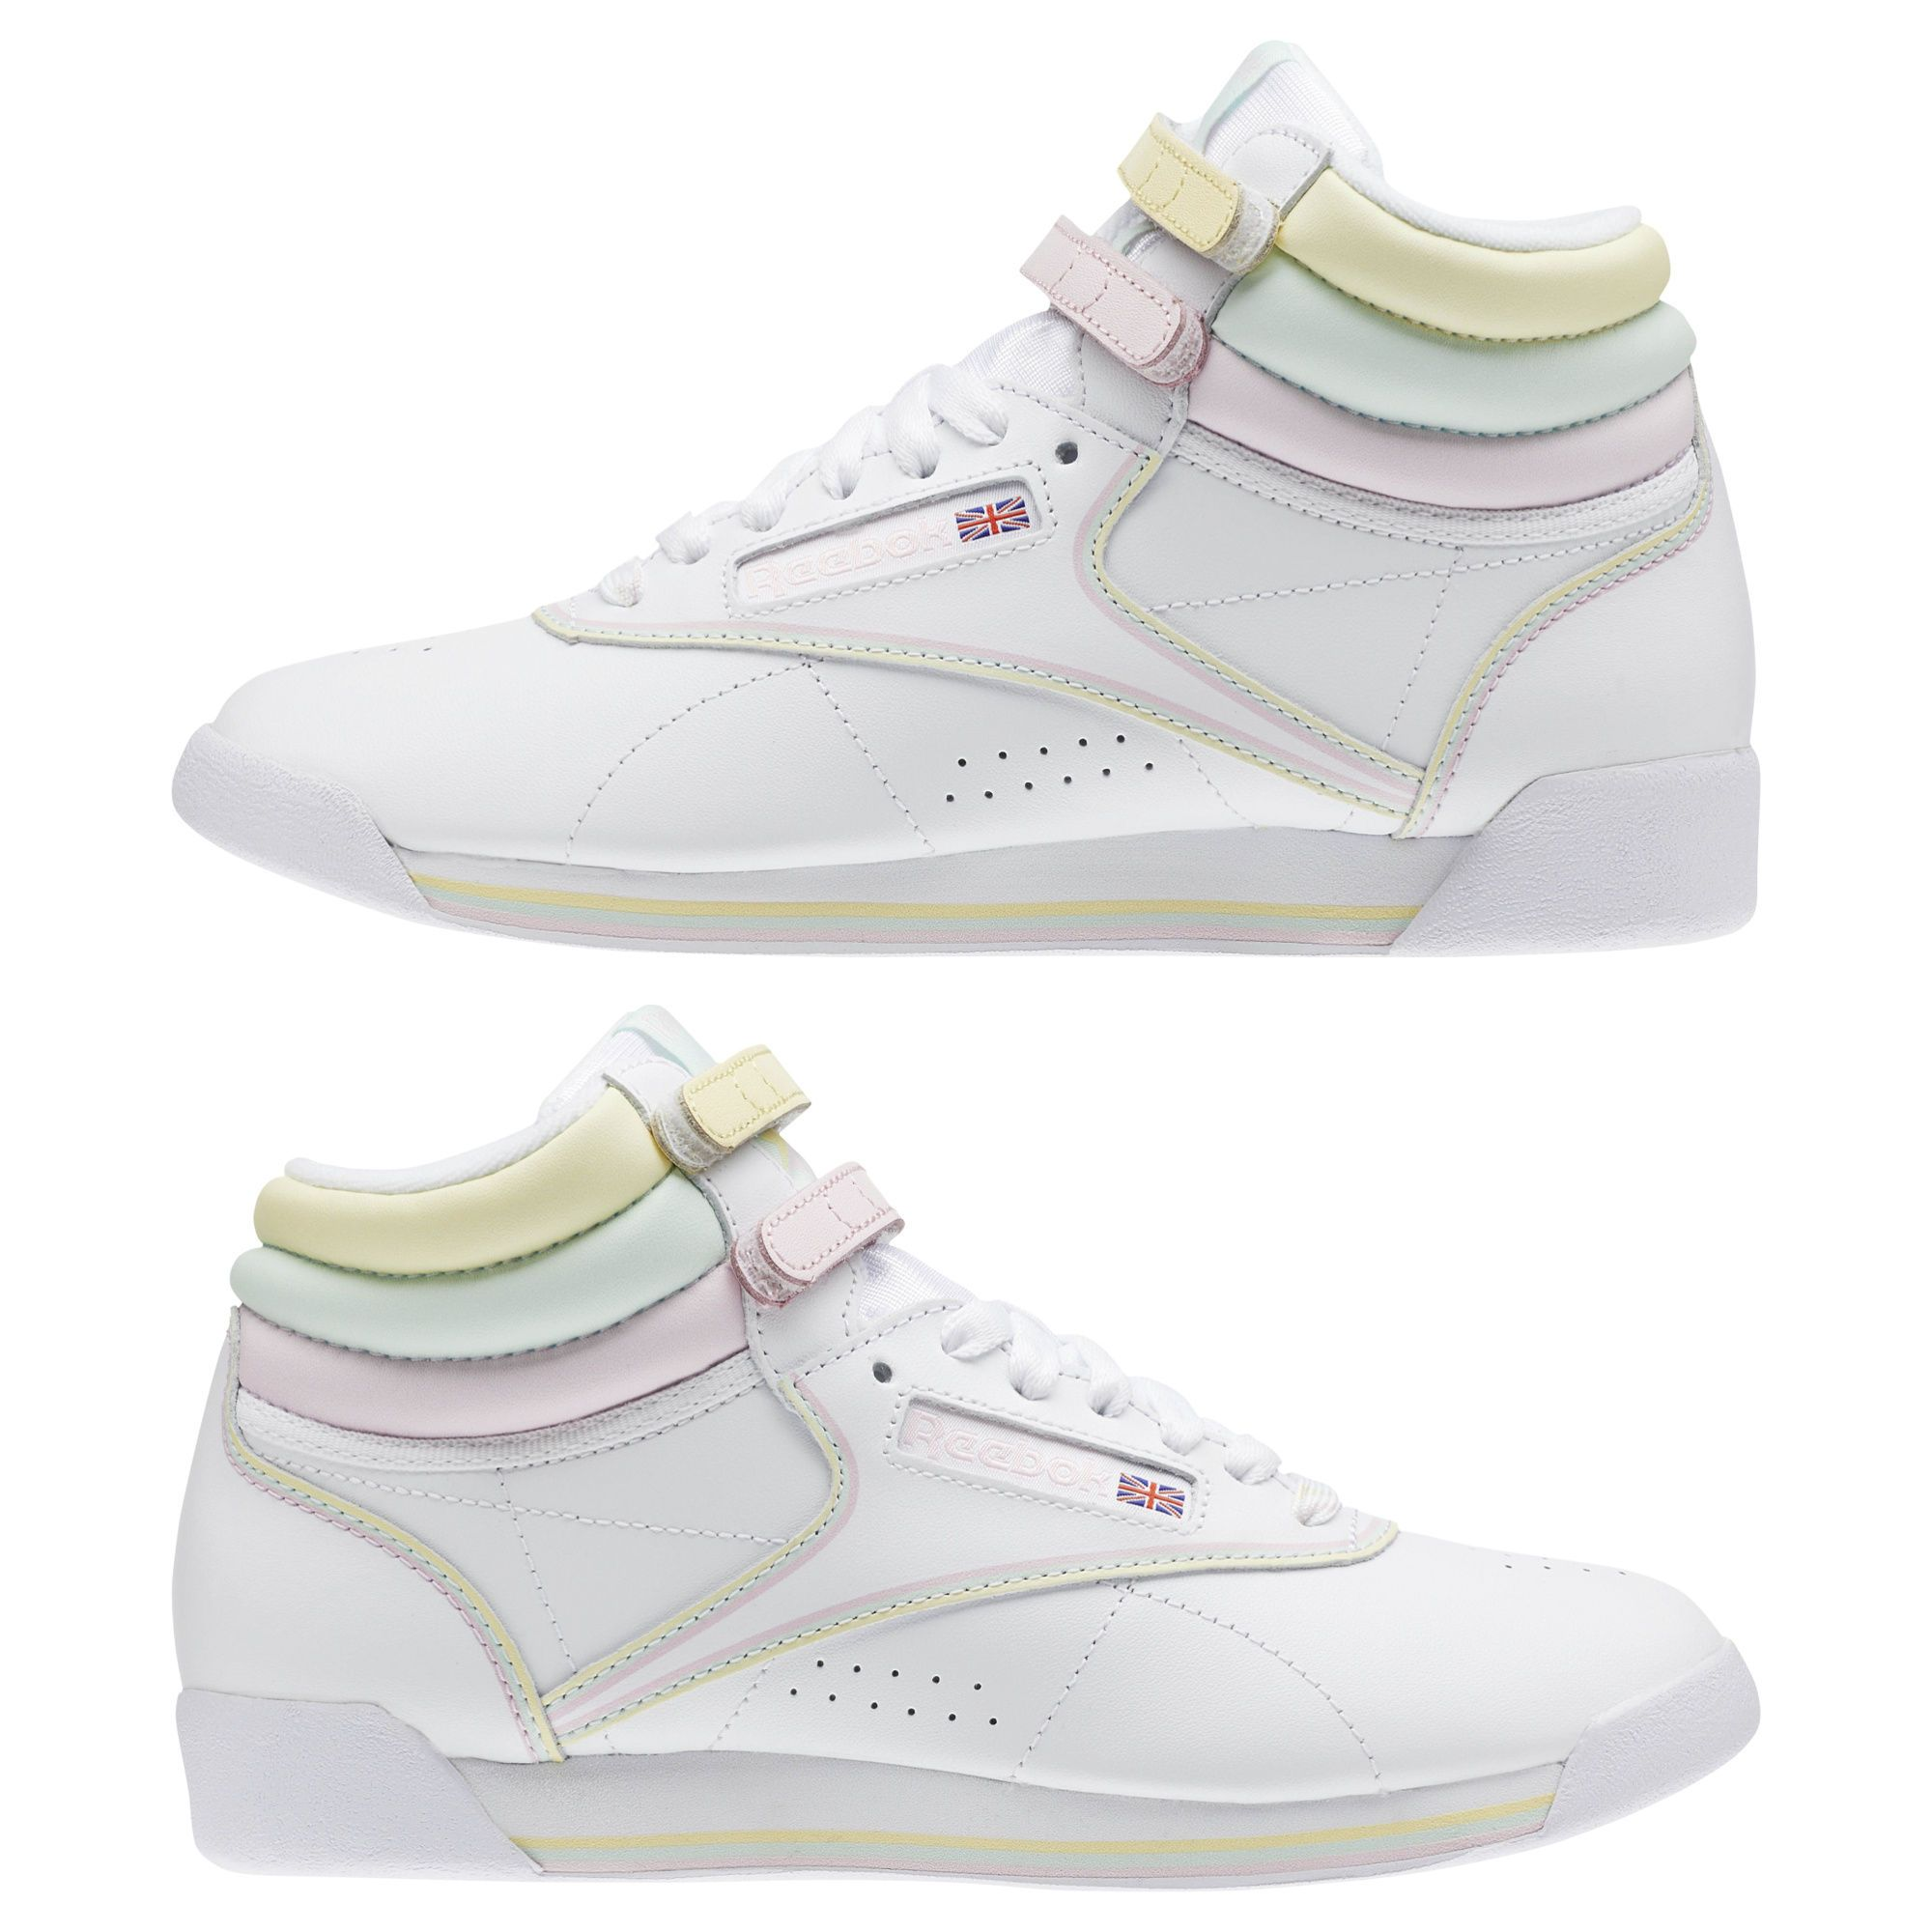 Reebok Women s Freestyle Hi x GLOW in Glow   White   Pink   Green ... b9f0cd1a4